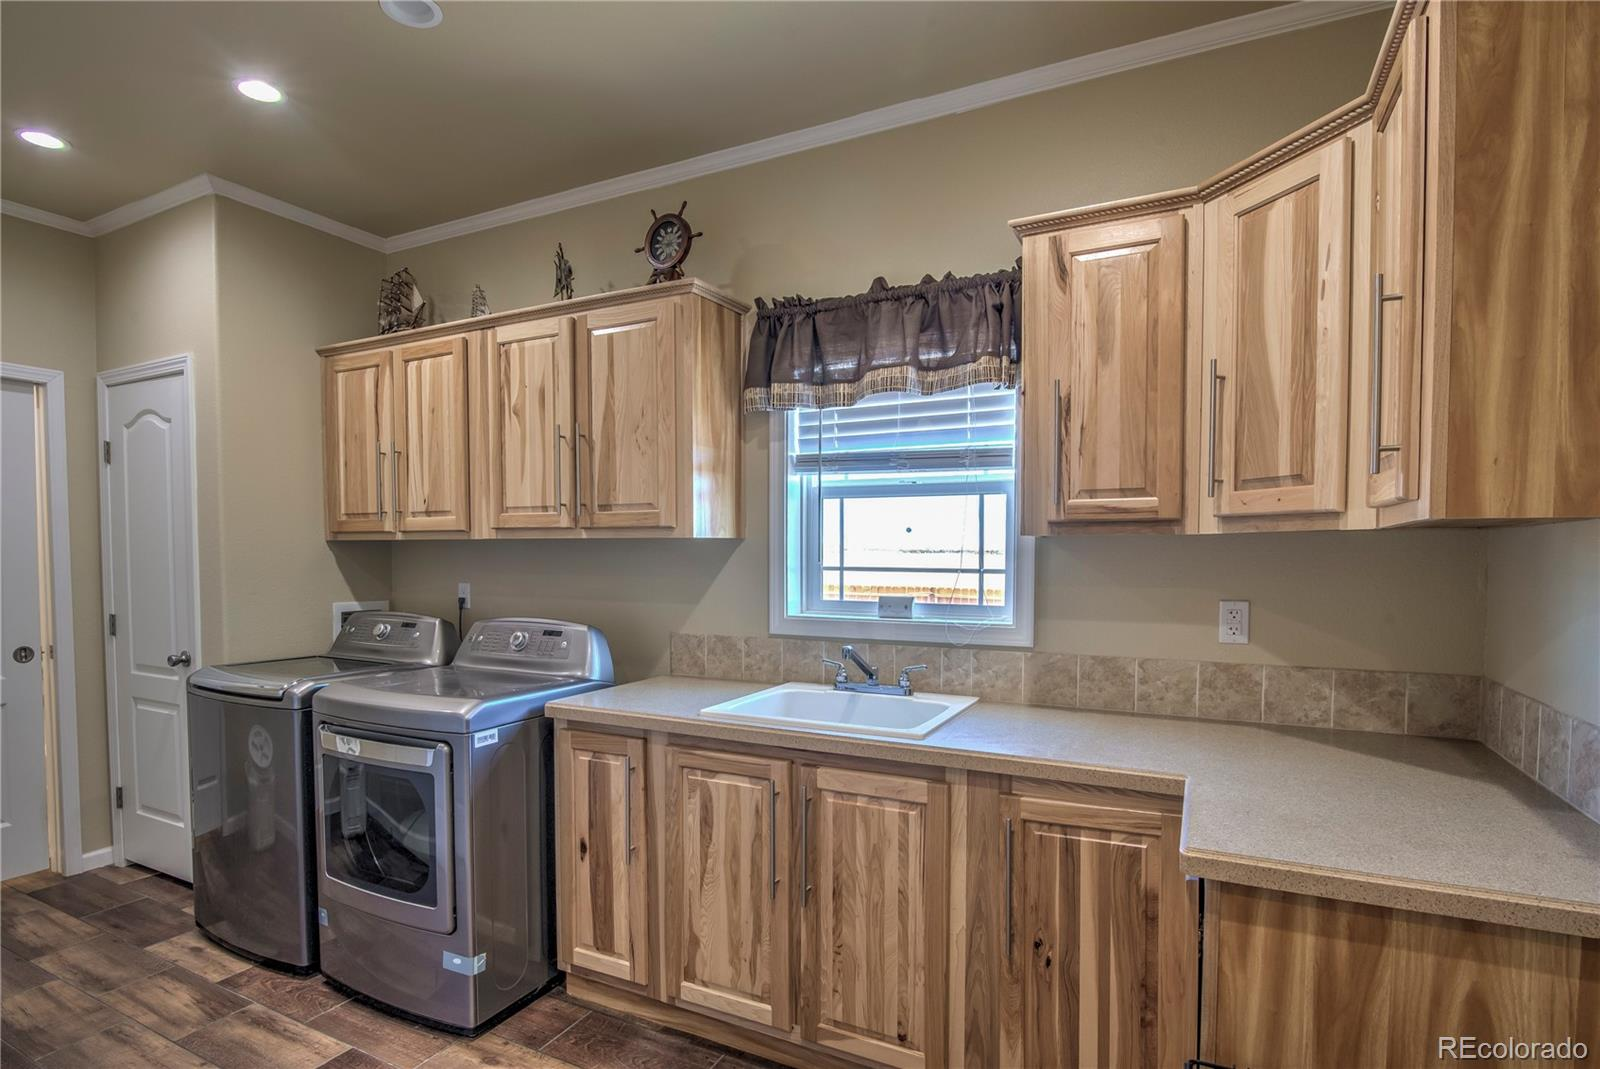 MLS# 8441040 - 25 - 595 Spotted Owl Way, Calhan, CO 80808